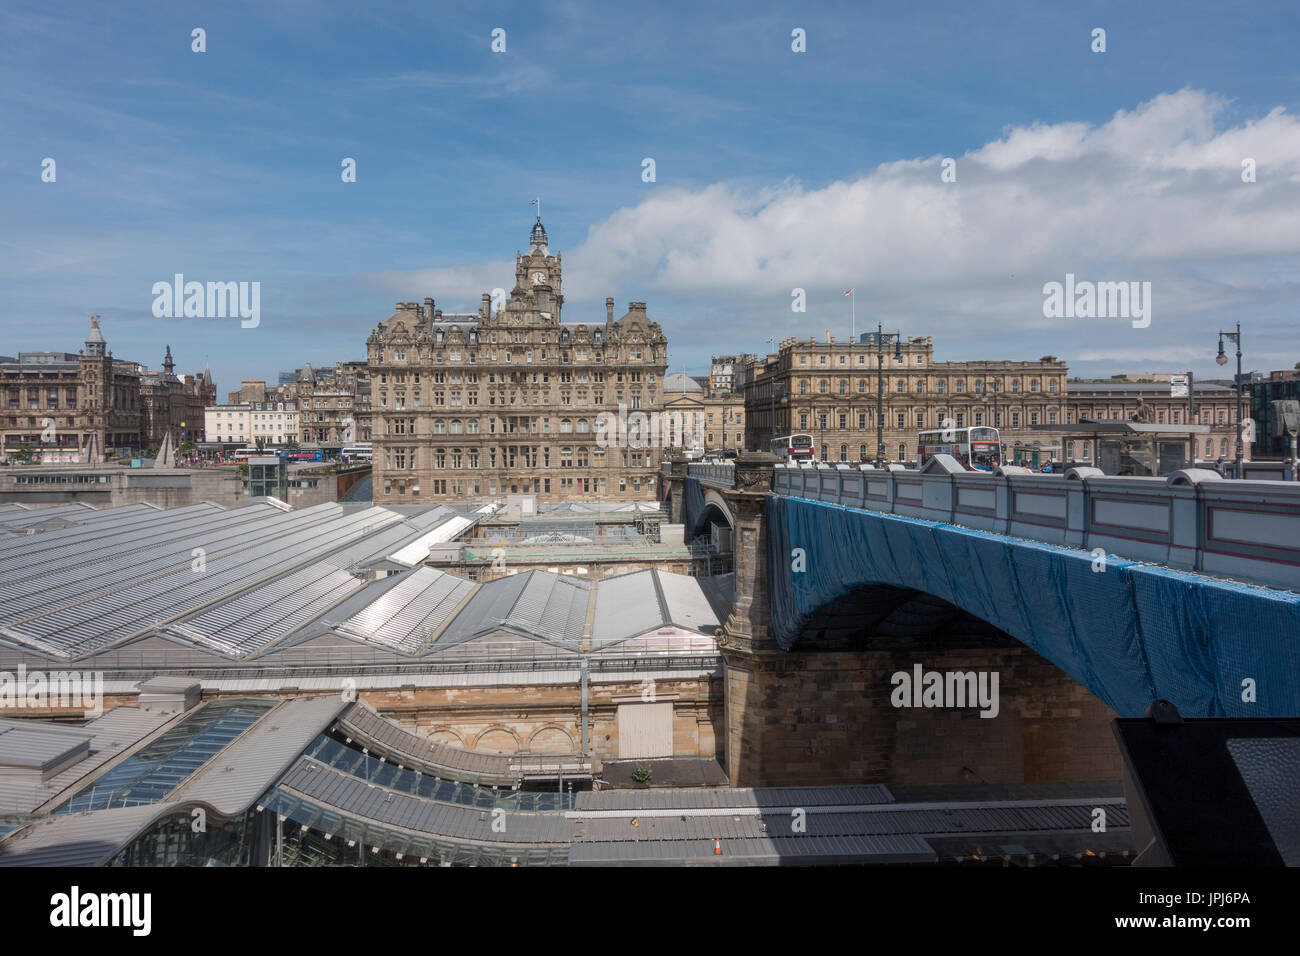 The Balmoral Hotel Seen From Old Town Edinburgh, Across The Roof Of  Waverley Station Scotland